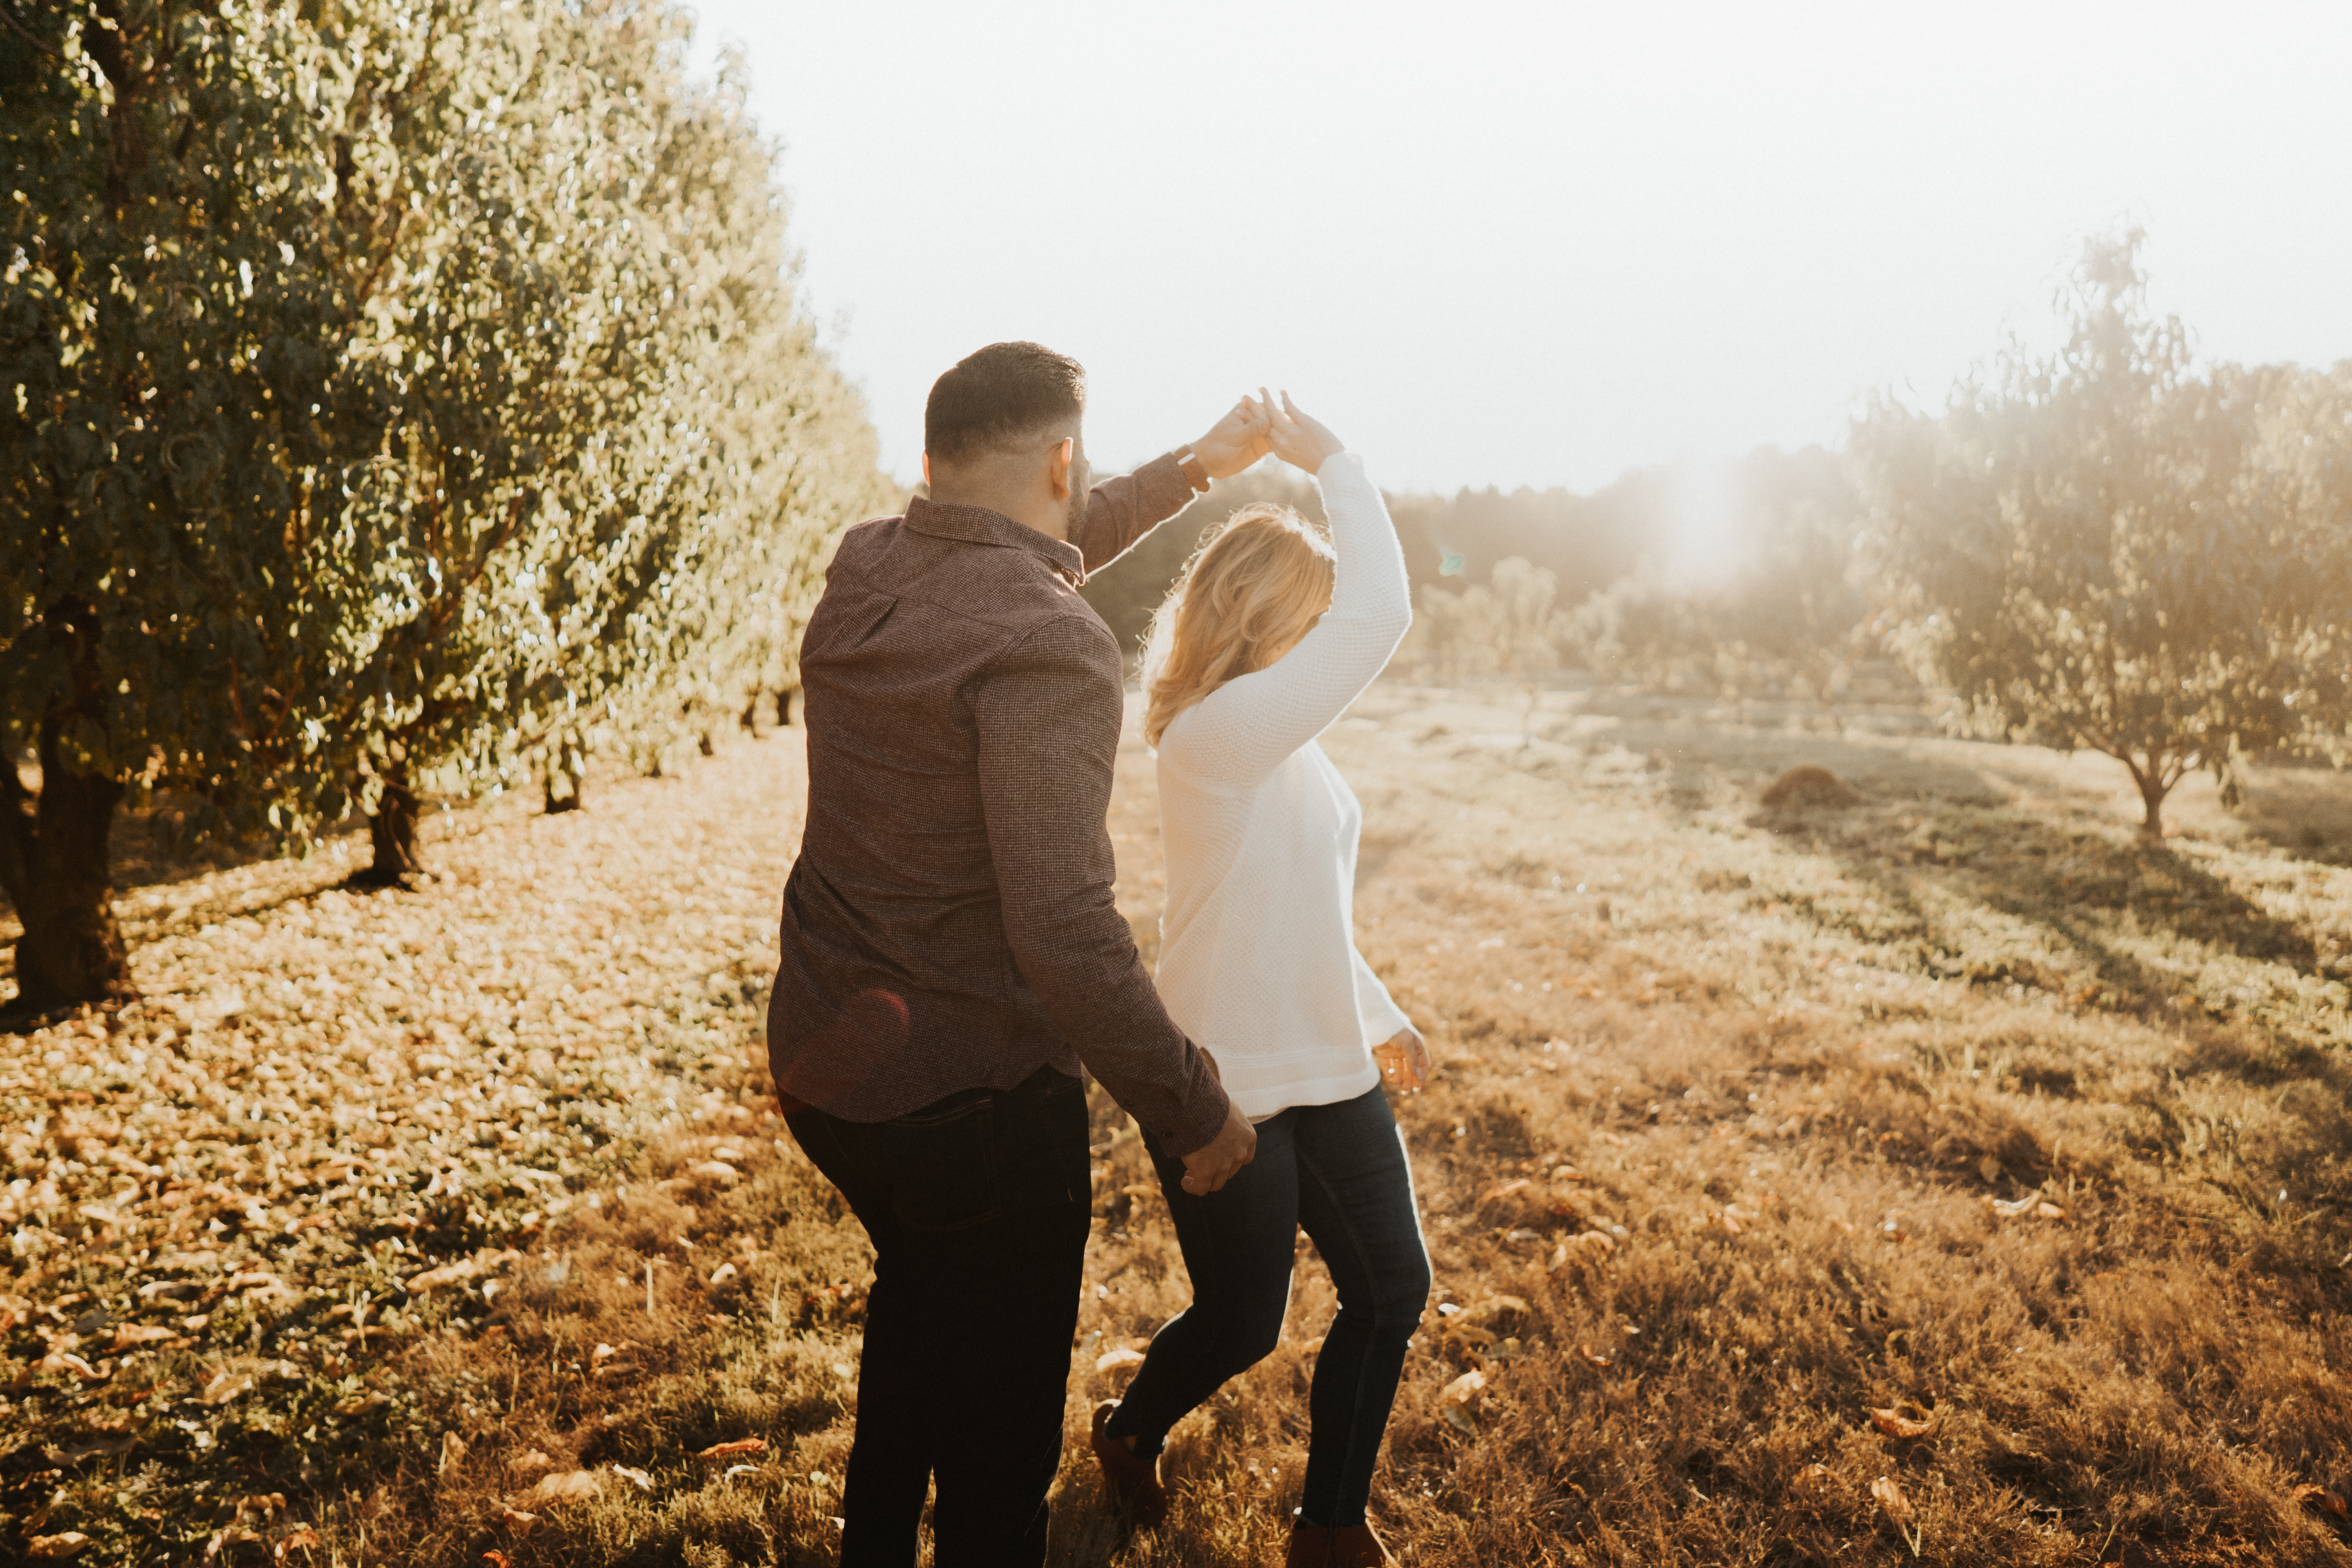 A couple happily dancing in a field after finding true love after 40.